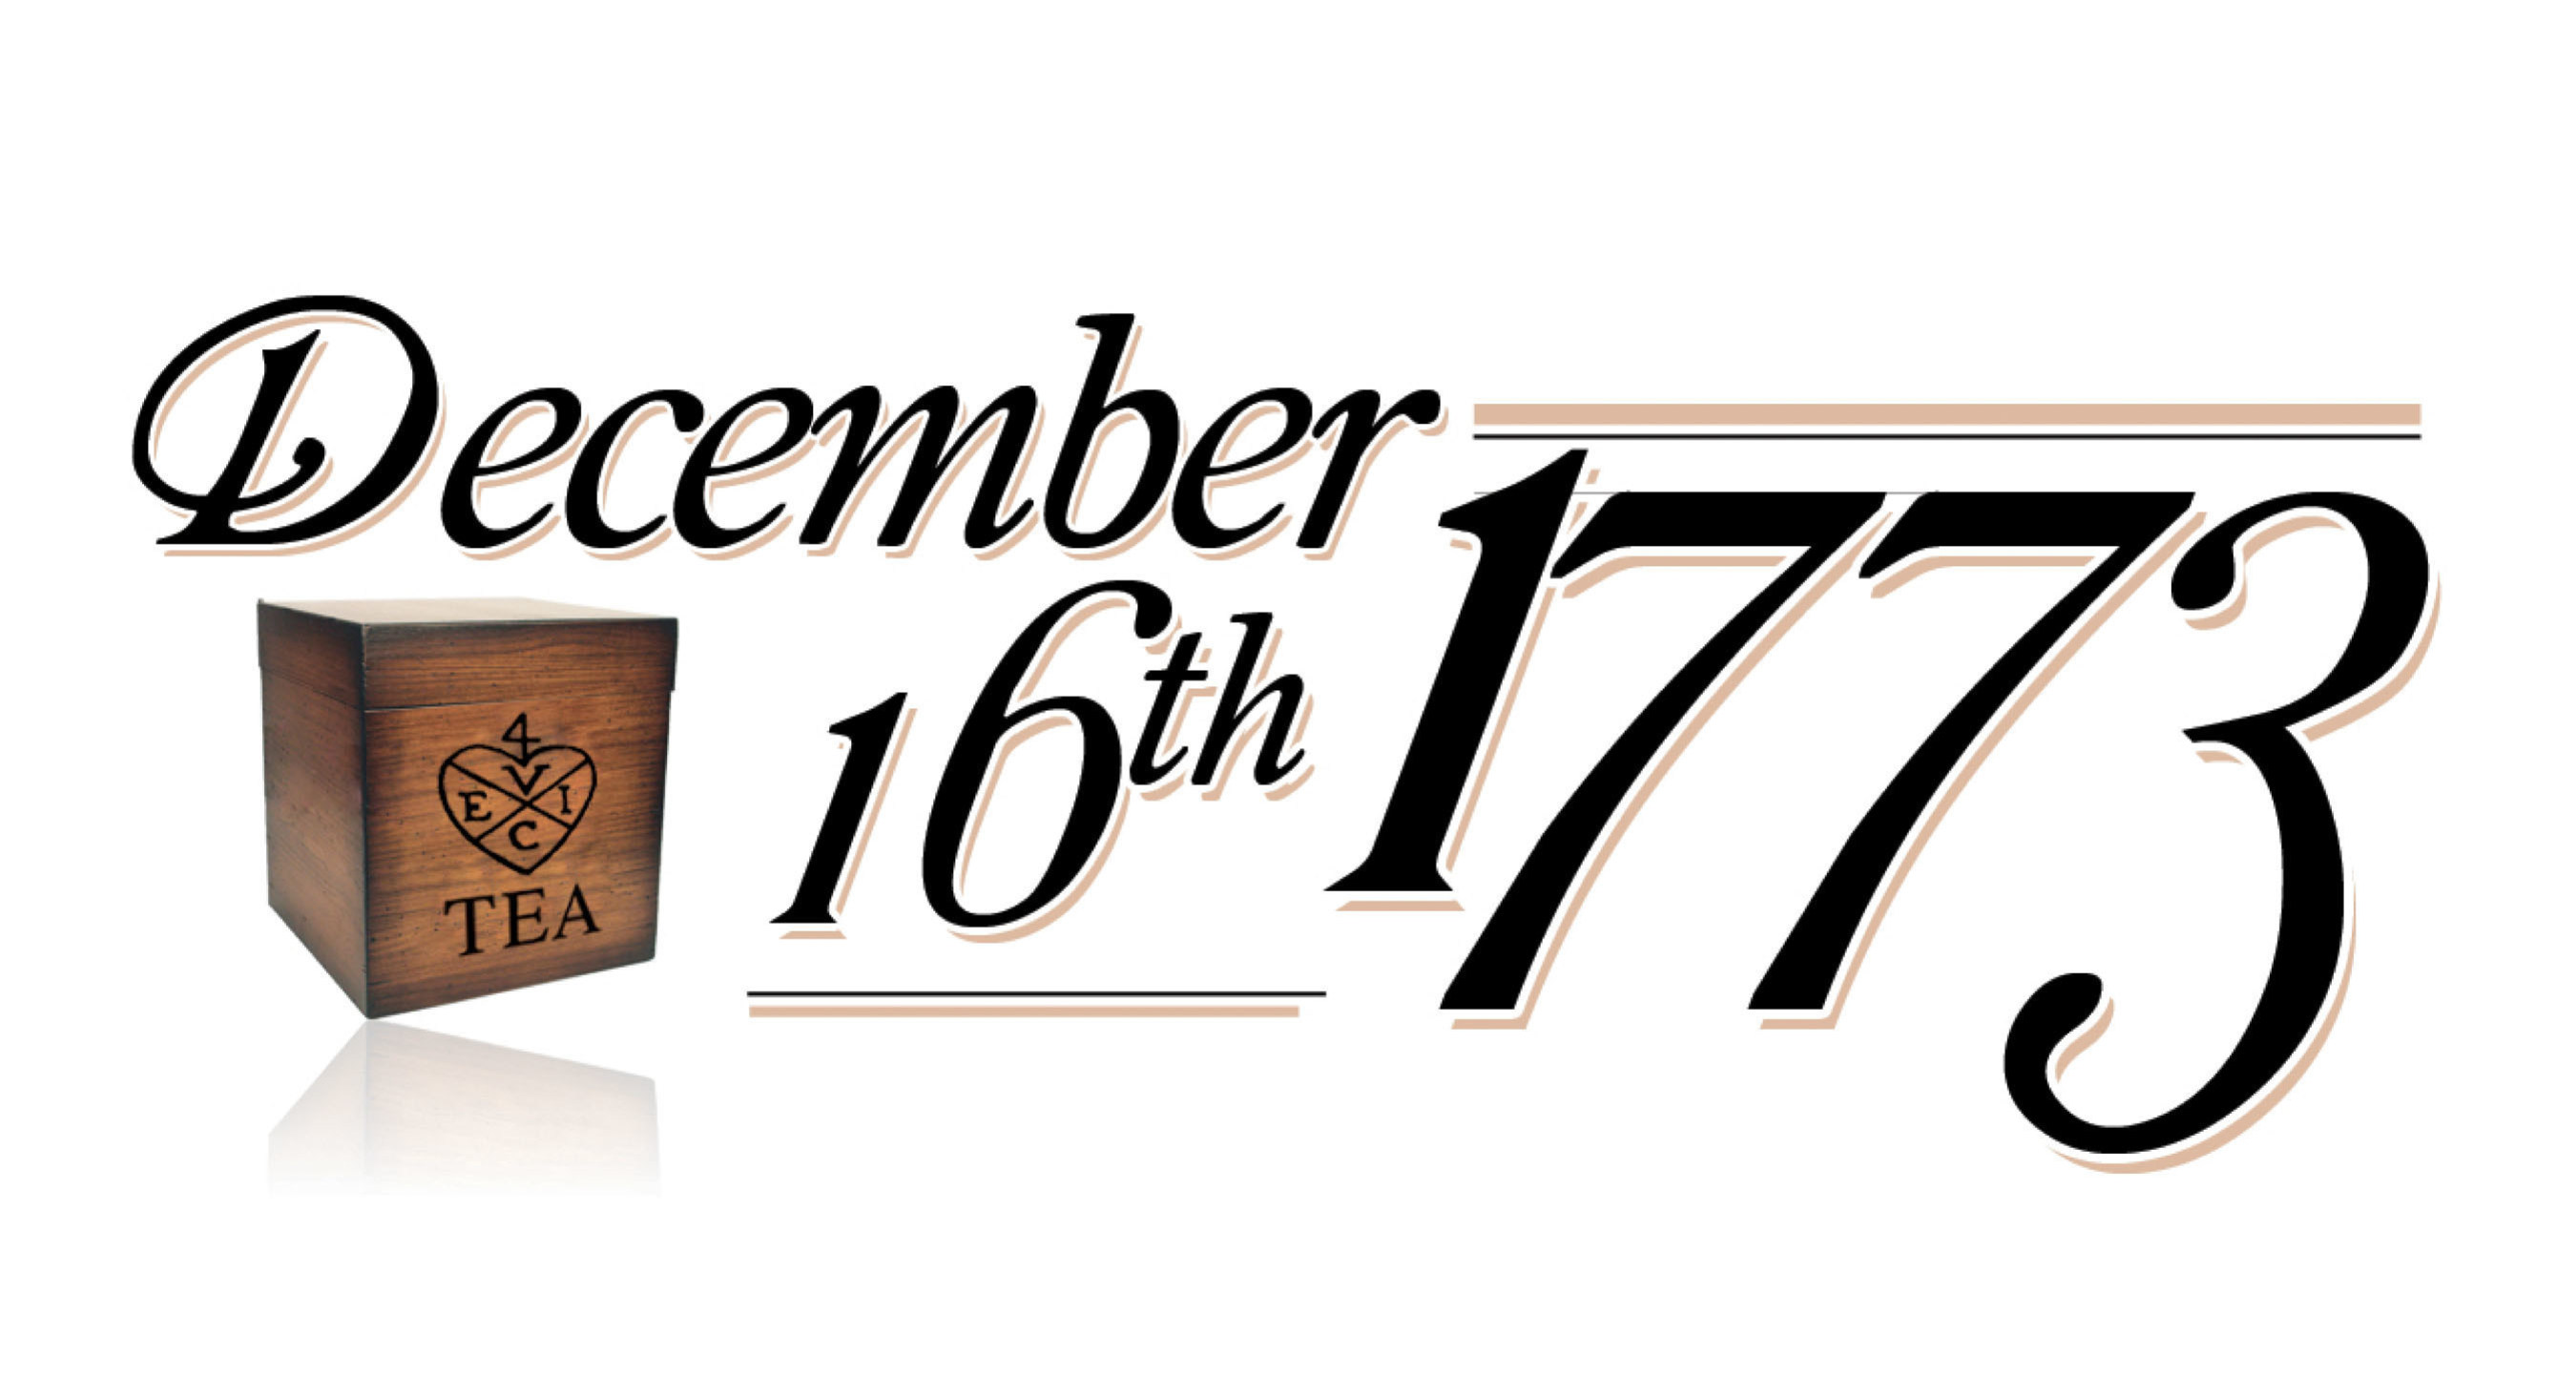 Boston's Old South Meeting House and The Boston Tea Party Ships(SM) & Museum Present: The 242nd Boston Tea Party Anniversary & Annual Reenactment